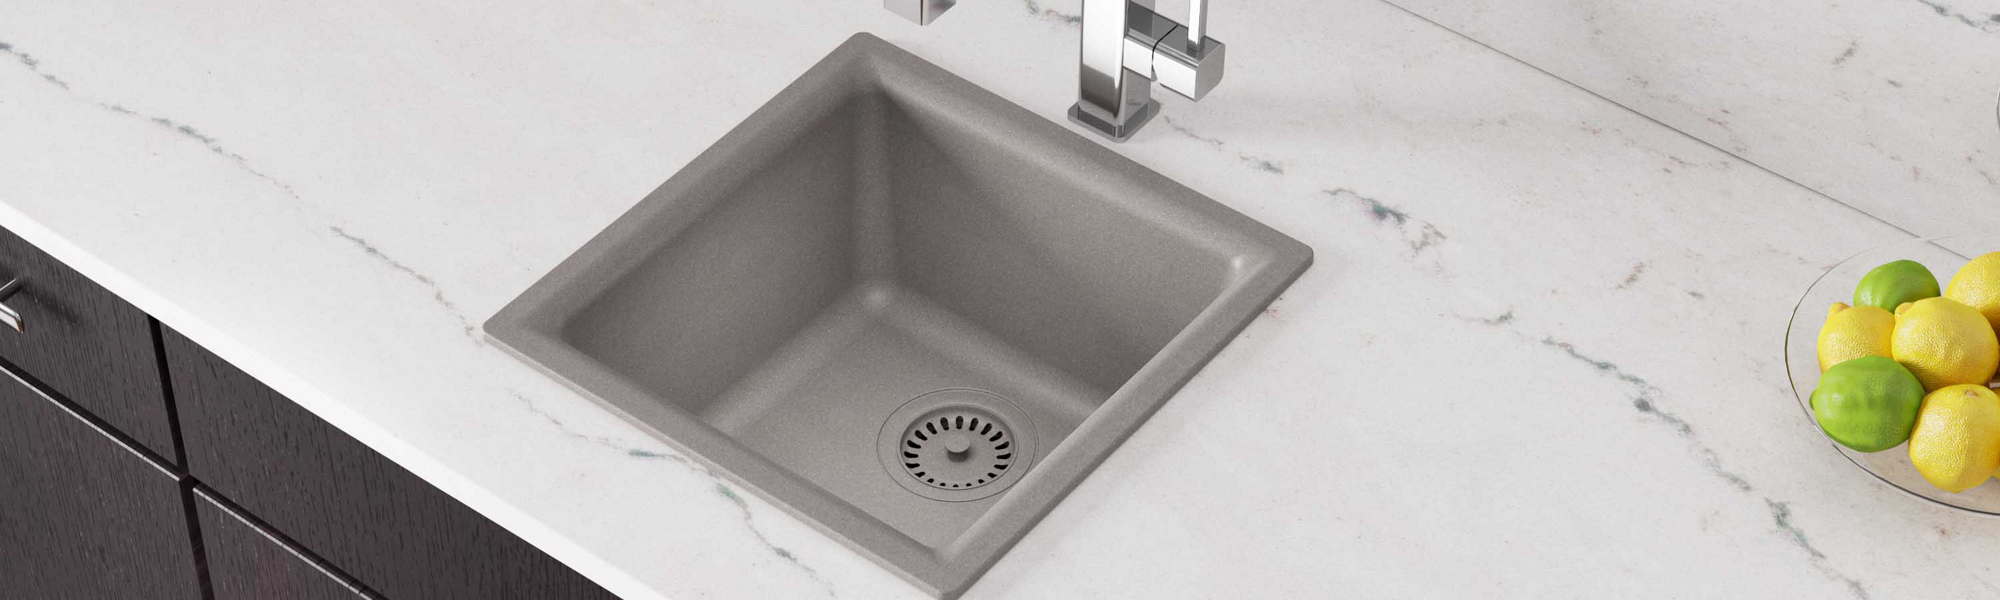 Elkay Quartz Classic 15-3/4in x 15-3/4in x 7-11/16in Single Bowl Dual Mount Bar Sink Greige